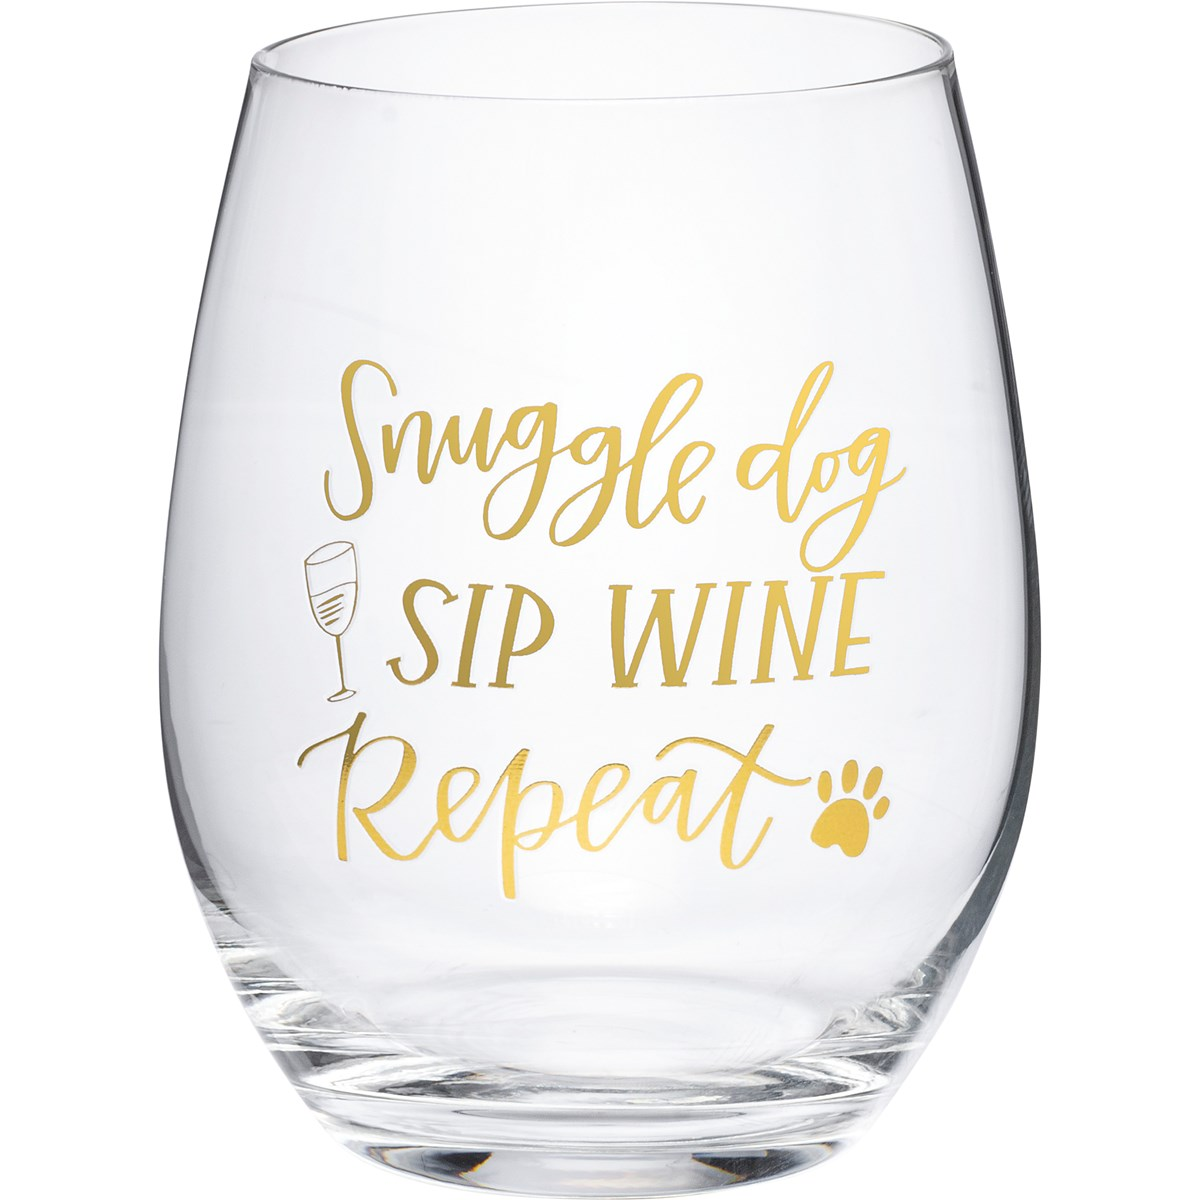 Wine Glass - Snuggle Dog Sip Wine Repeat - 15 oz. - Glass